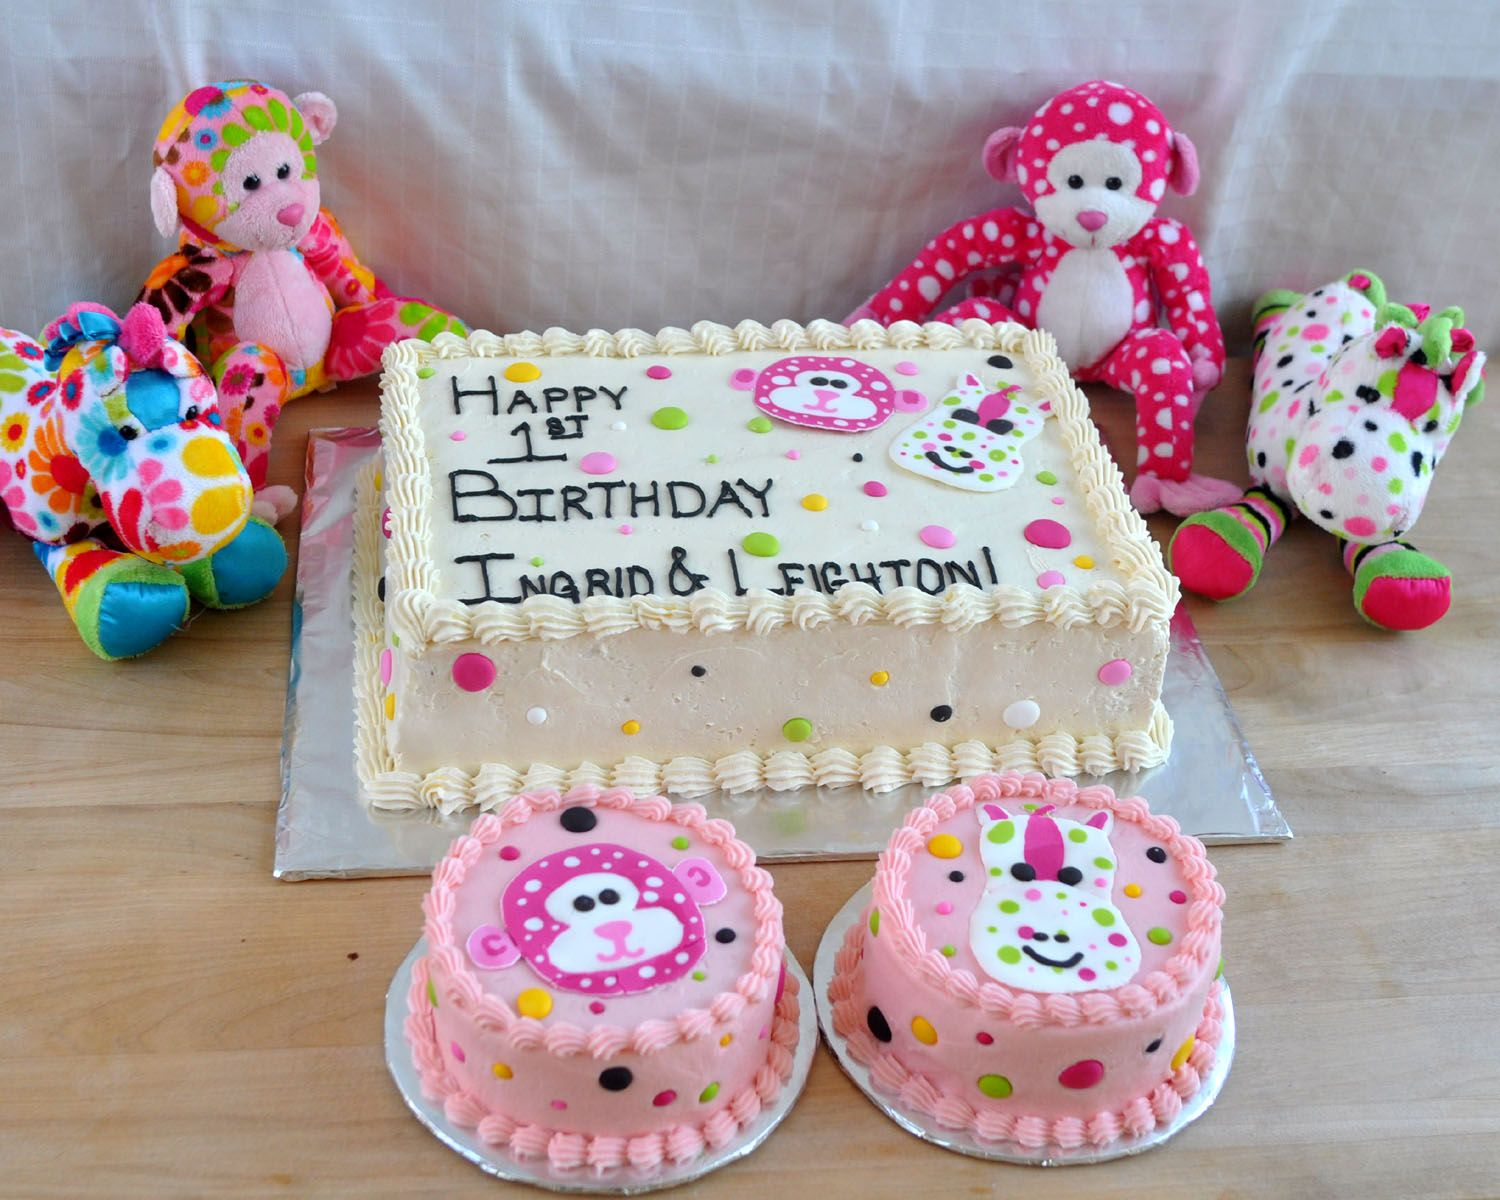 Cake decorating ideas for beginners birthday | Photo of delicious ...